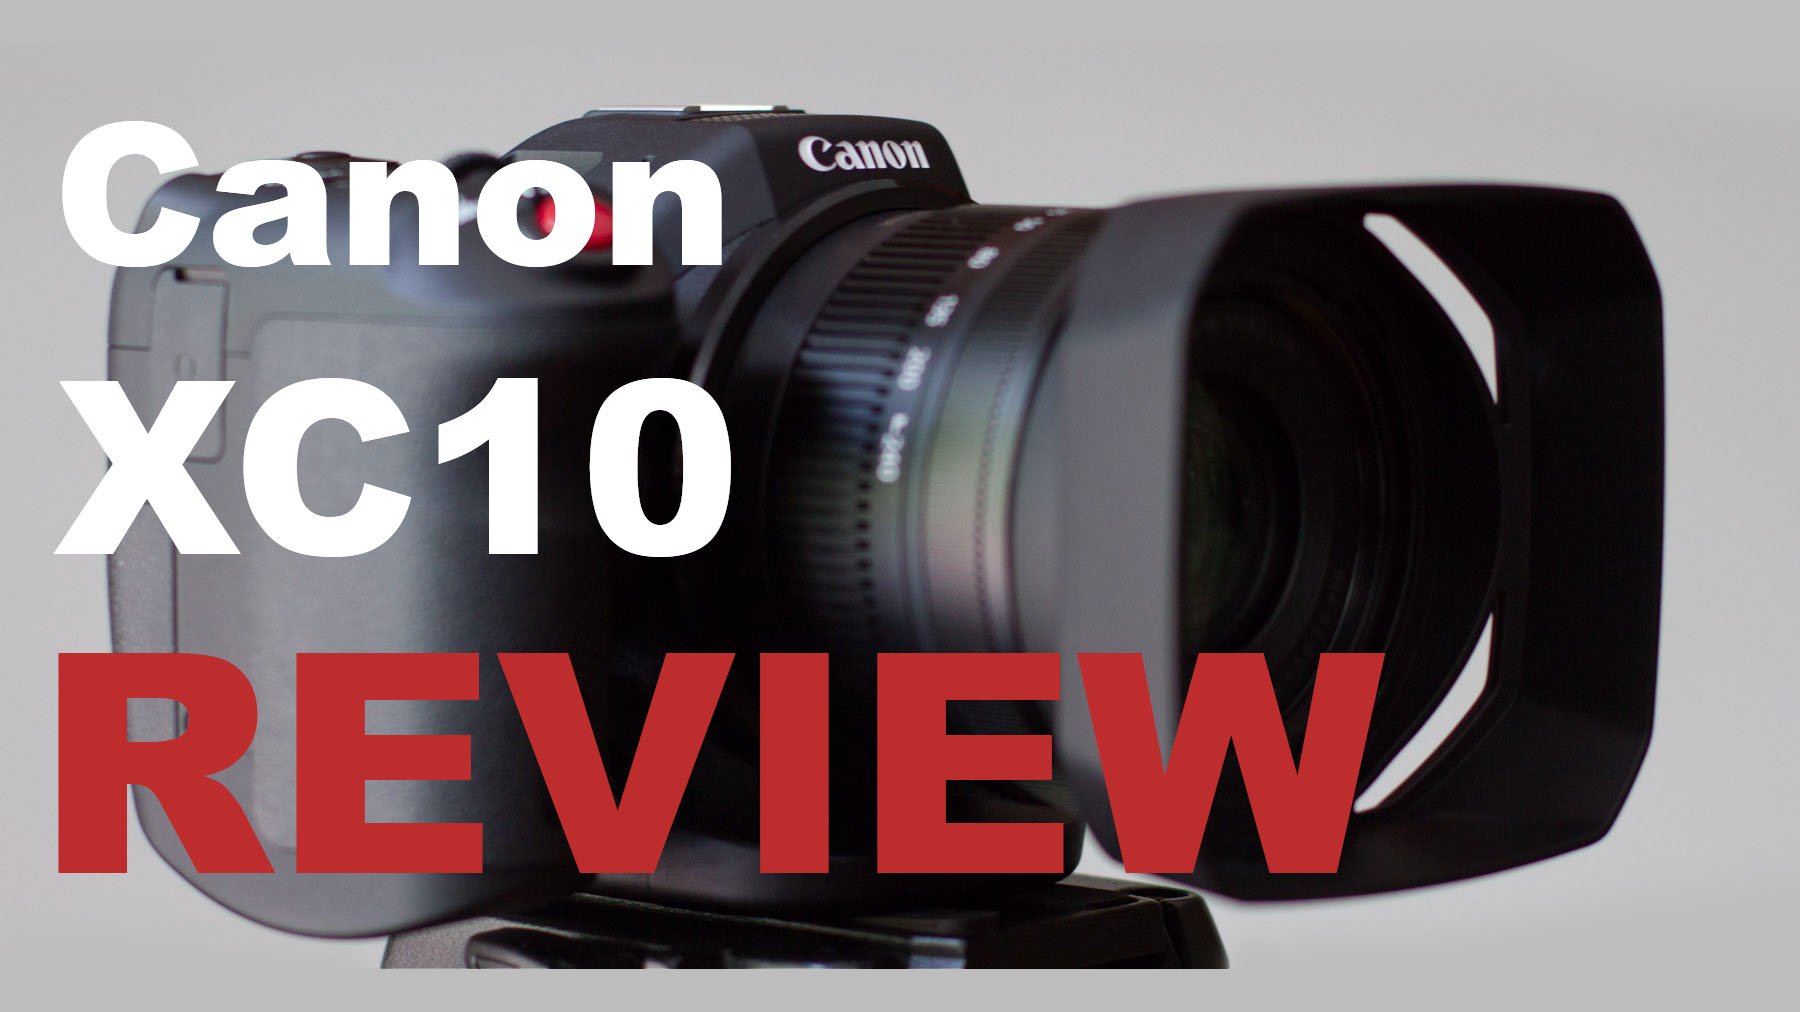 Canon XC10 REVIEW – Compact Fixed Lens Cinema Camera